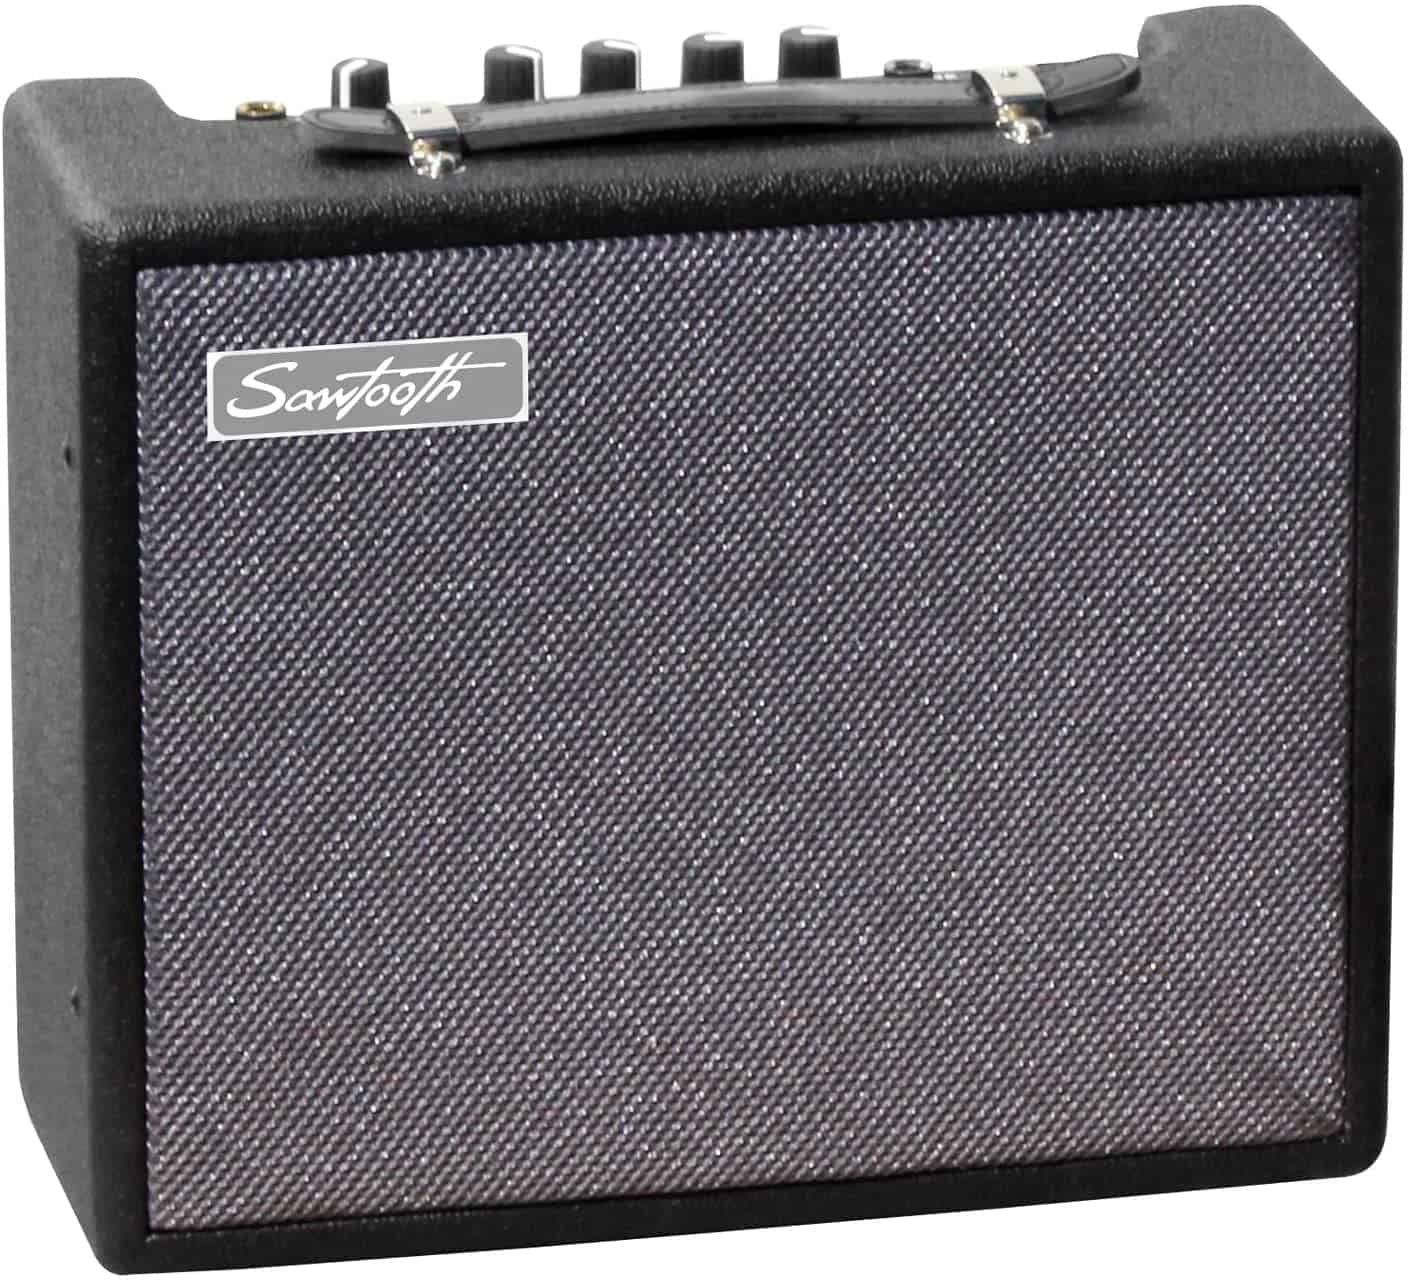 best electric guitar amp for beginners